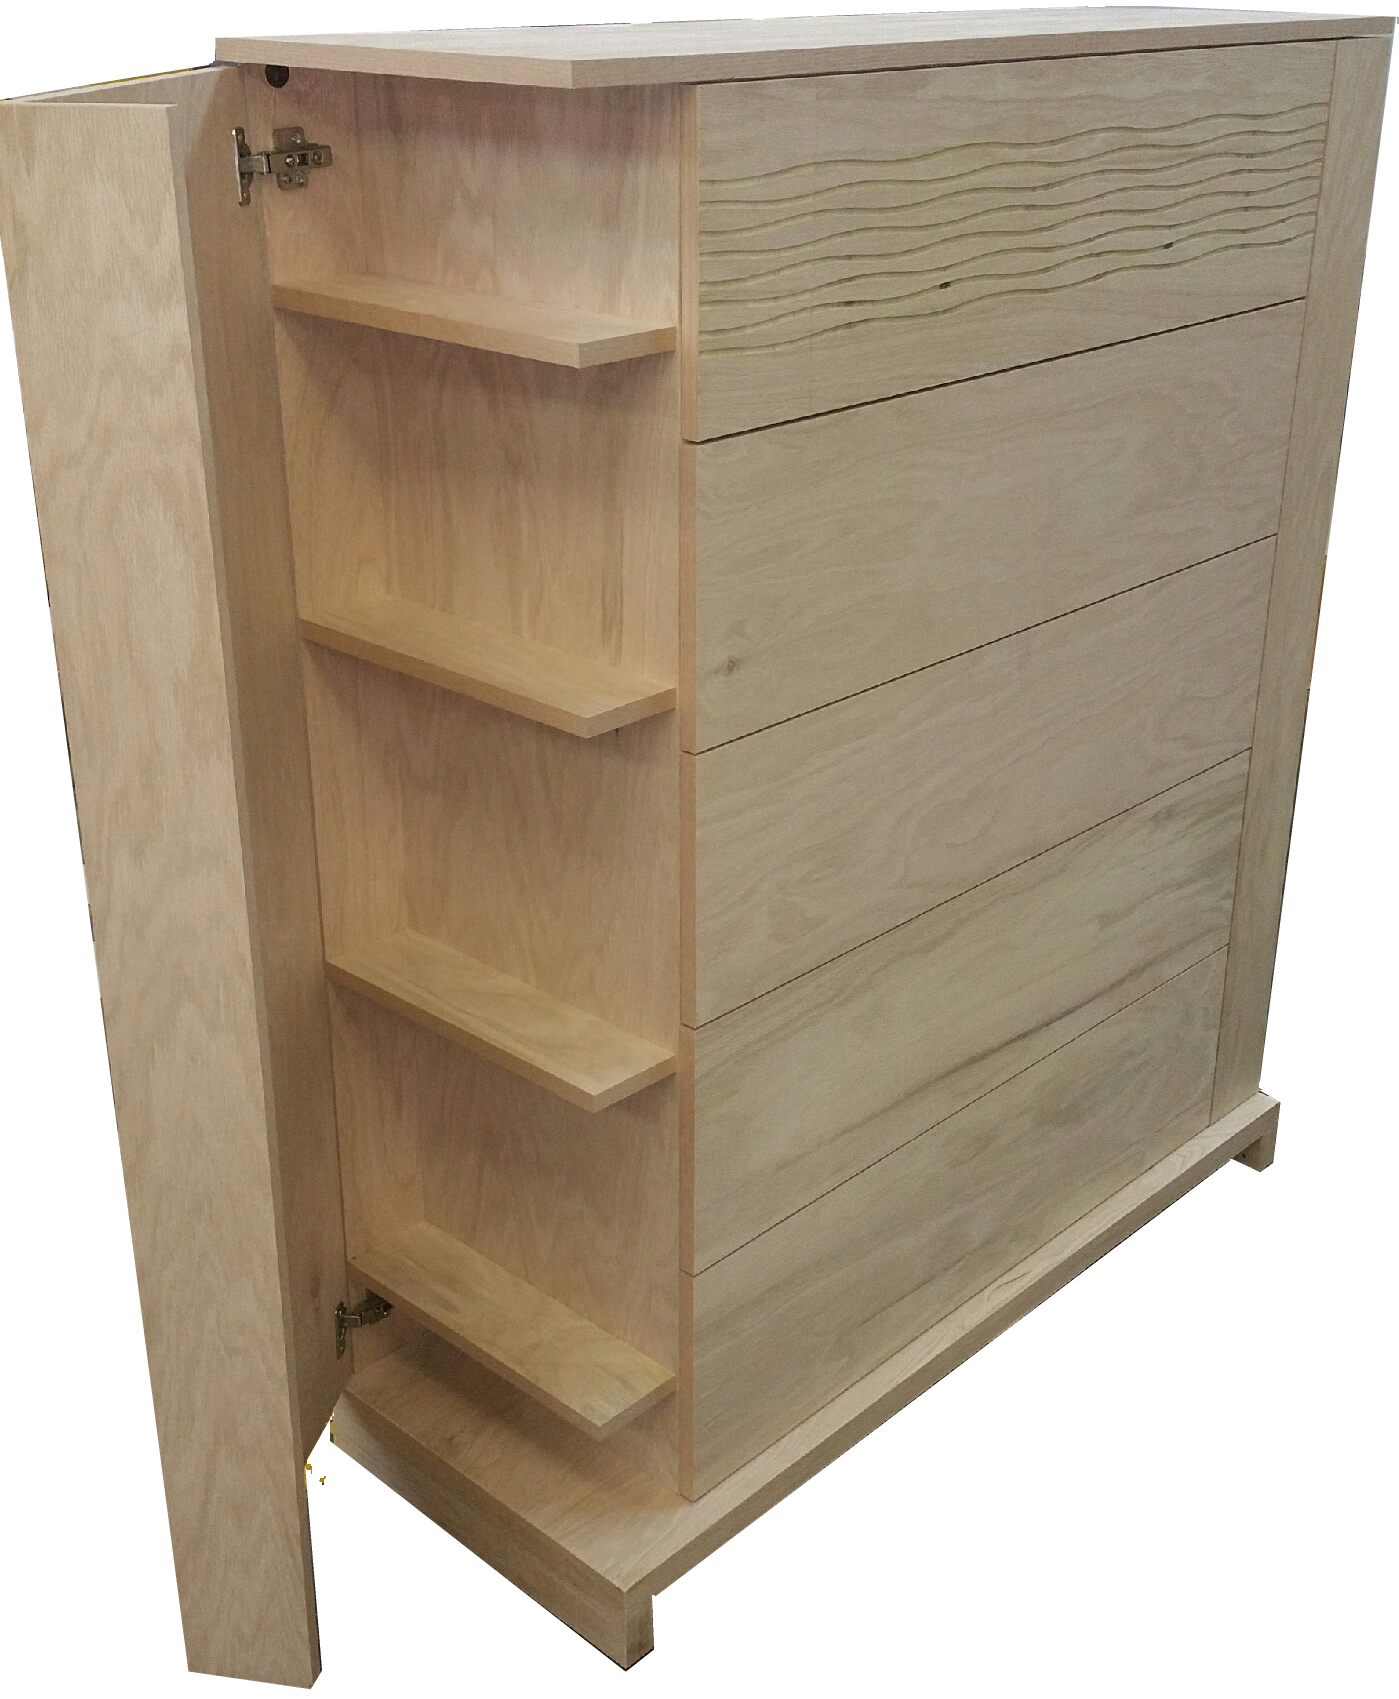 Contemporary Wave Bedroom Suite Chest featuring fold out hidden shelving.